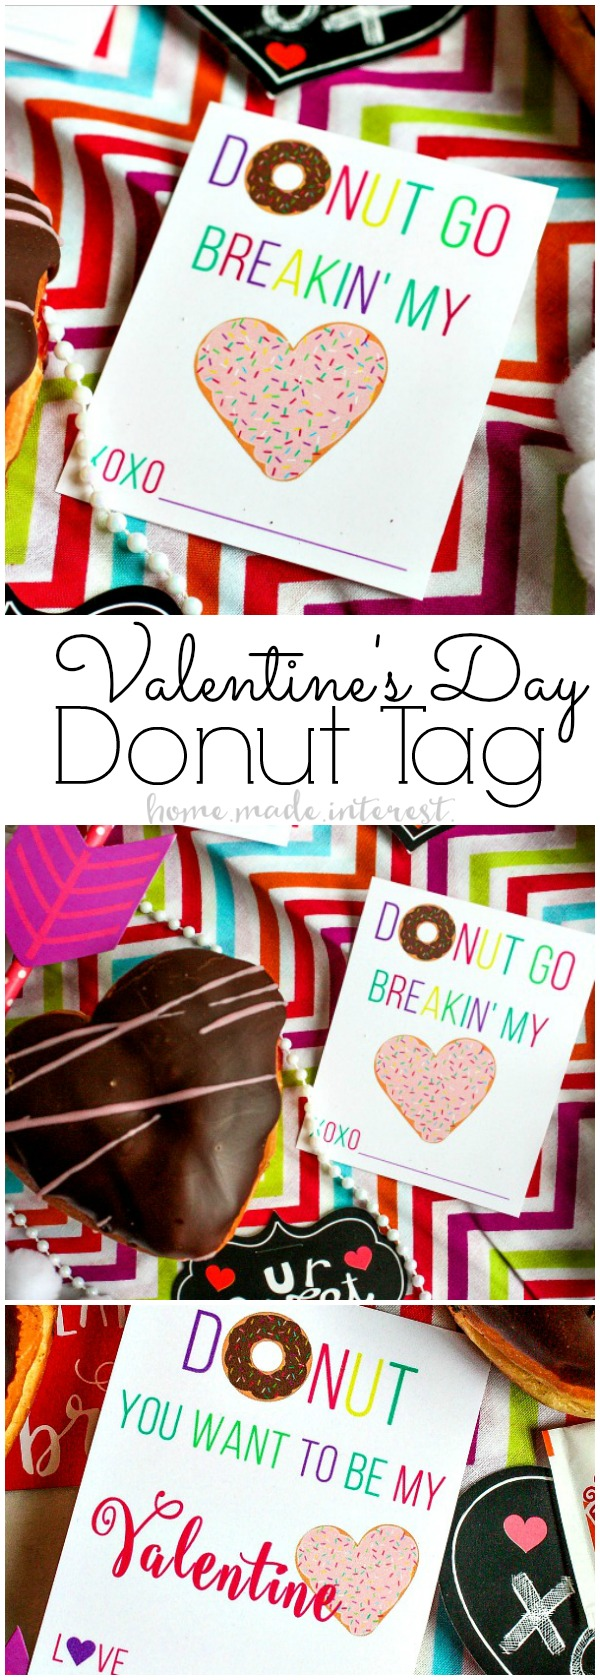 Easy Valentine's Day Donut Cards | Donuts for Valentine's Day the perfect Valentine's Day treat! Make these easy Valentine's Day favors for your sweetie or your kids' classroom Valentine's Day favor. This free printable donut valentine's day cards are just as sweet as a dozen donuts!